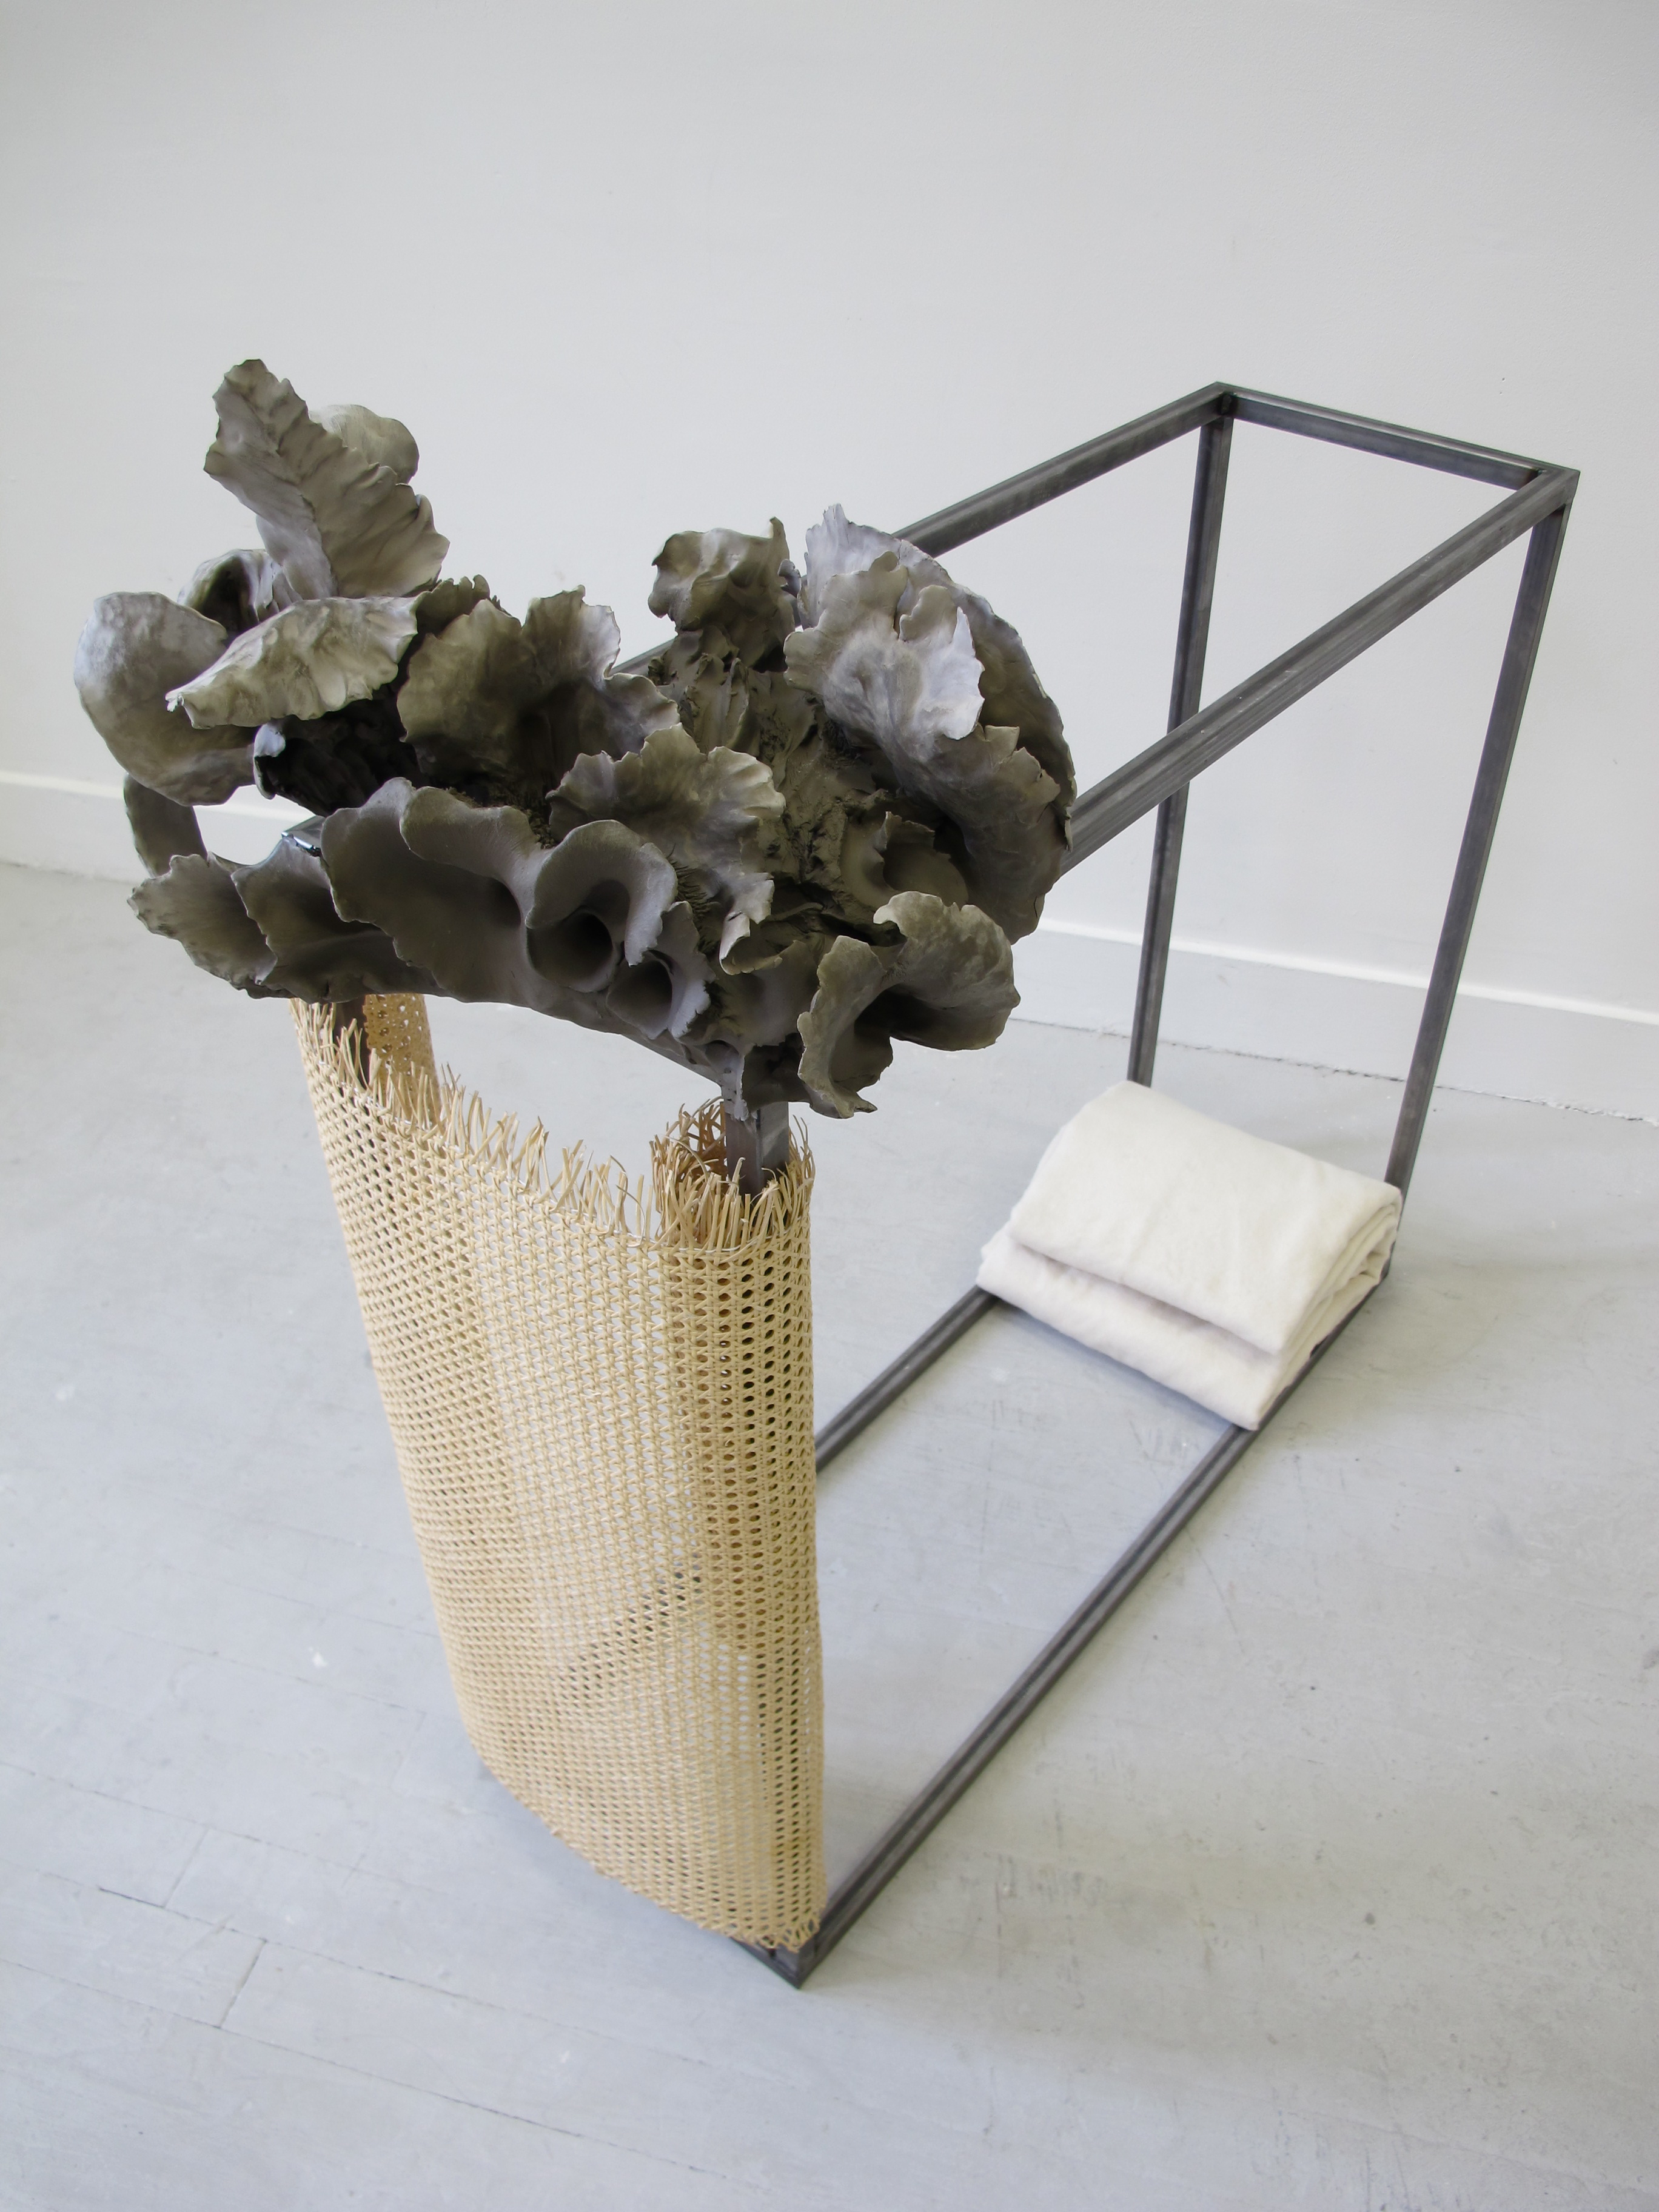 Untitled